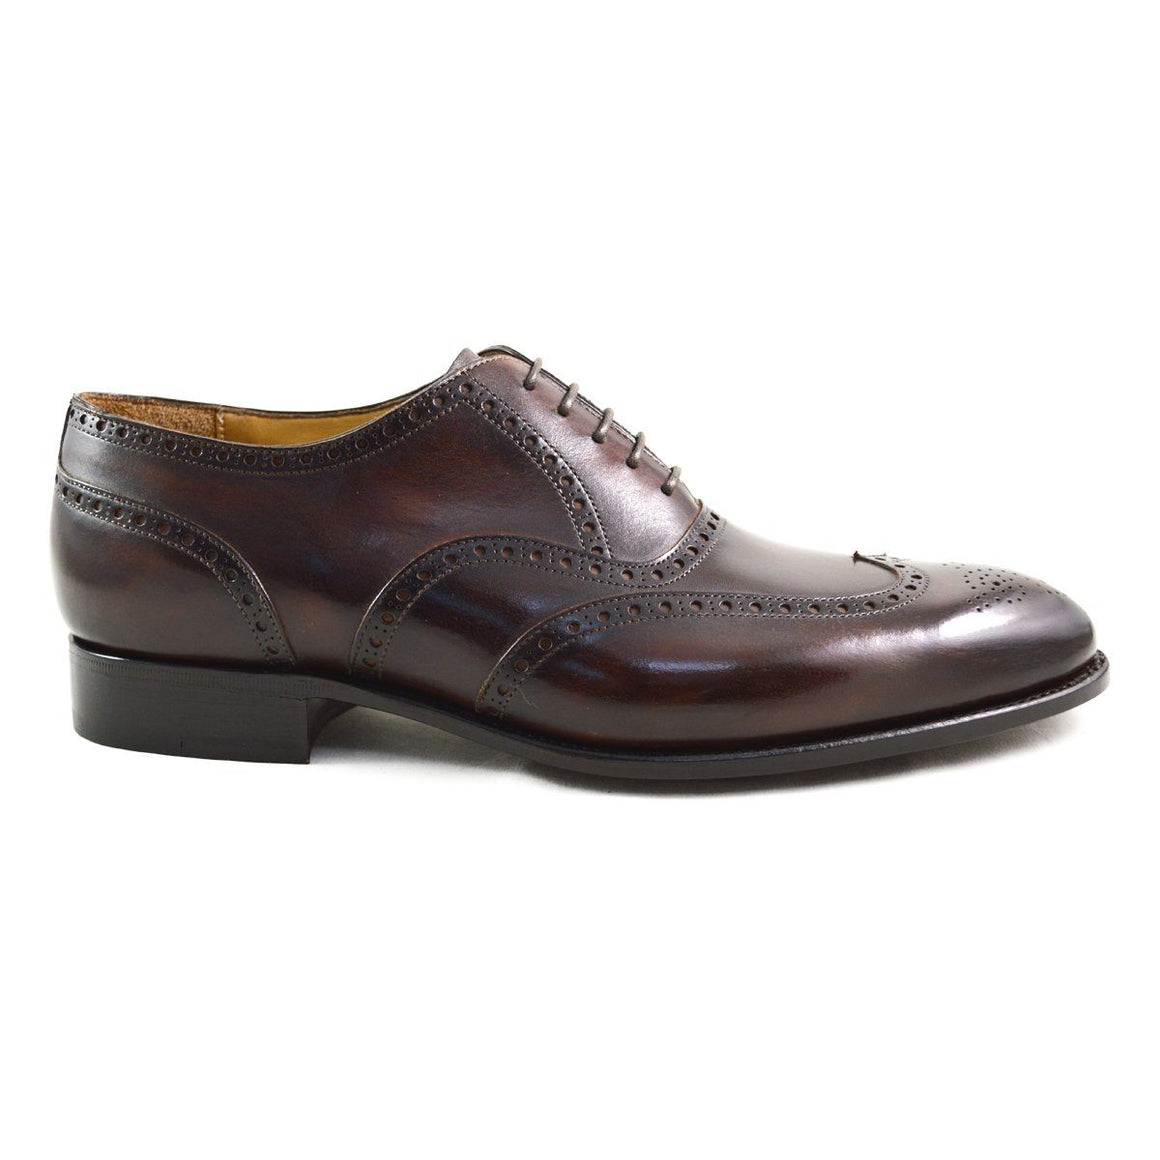 Carlos Santos Wingtip Brogue in Guimaraes Patina